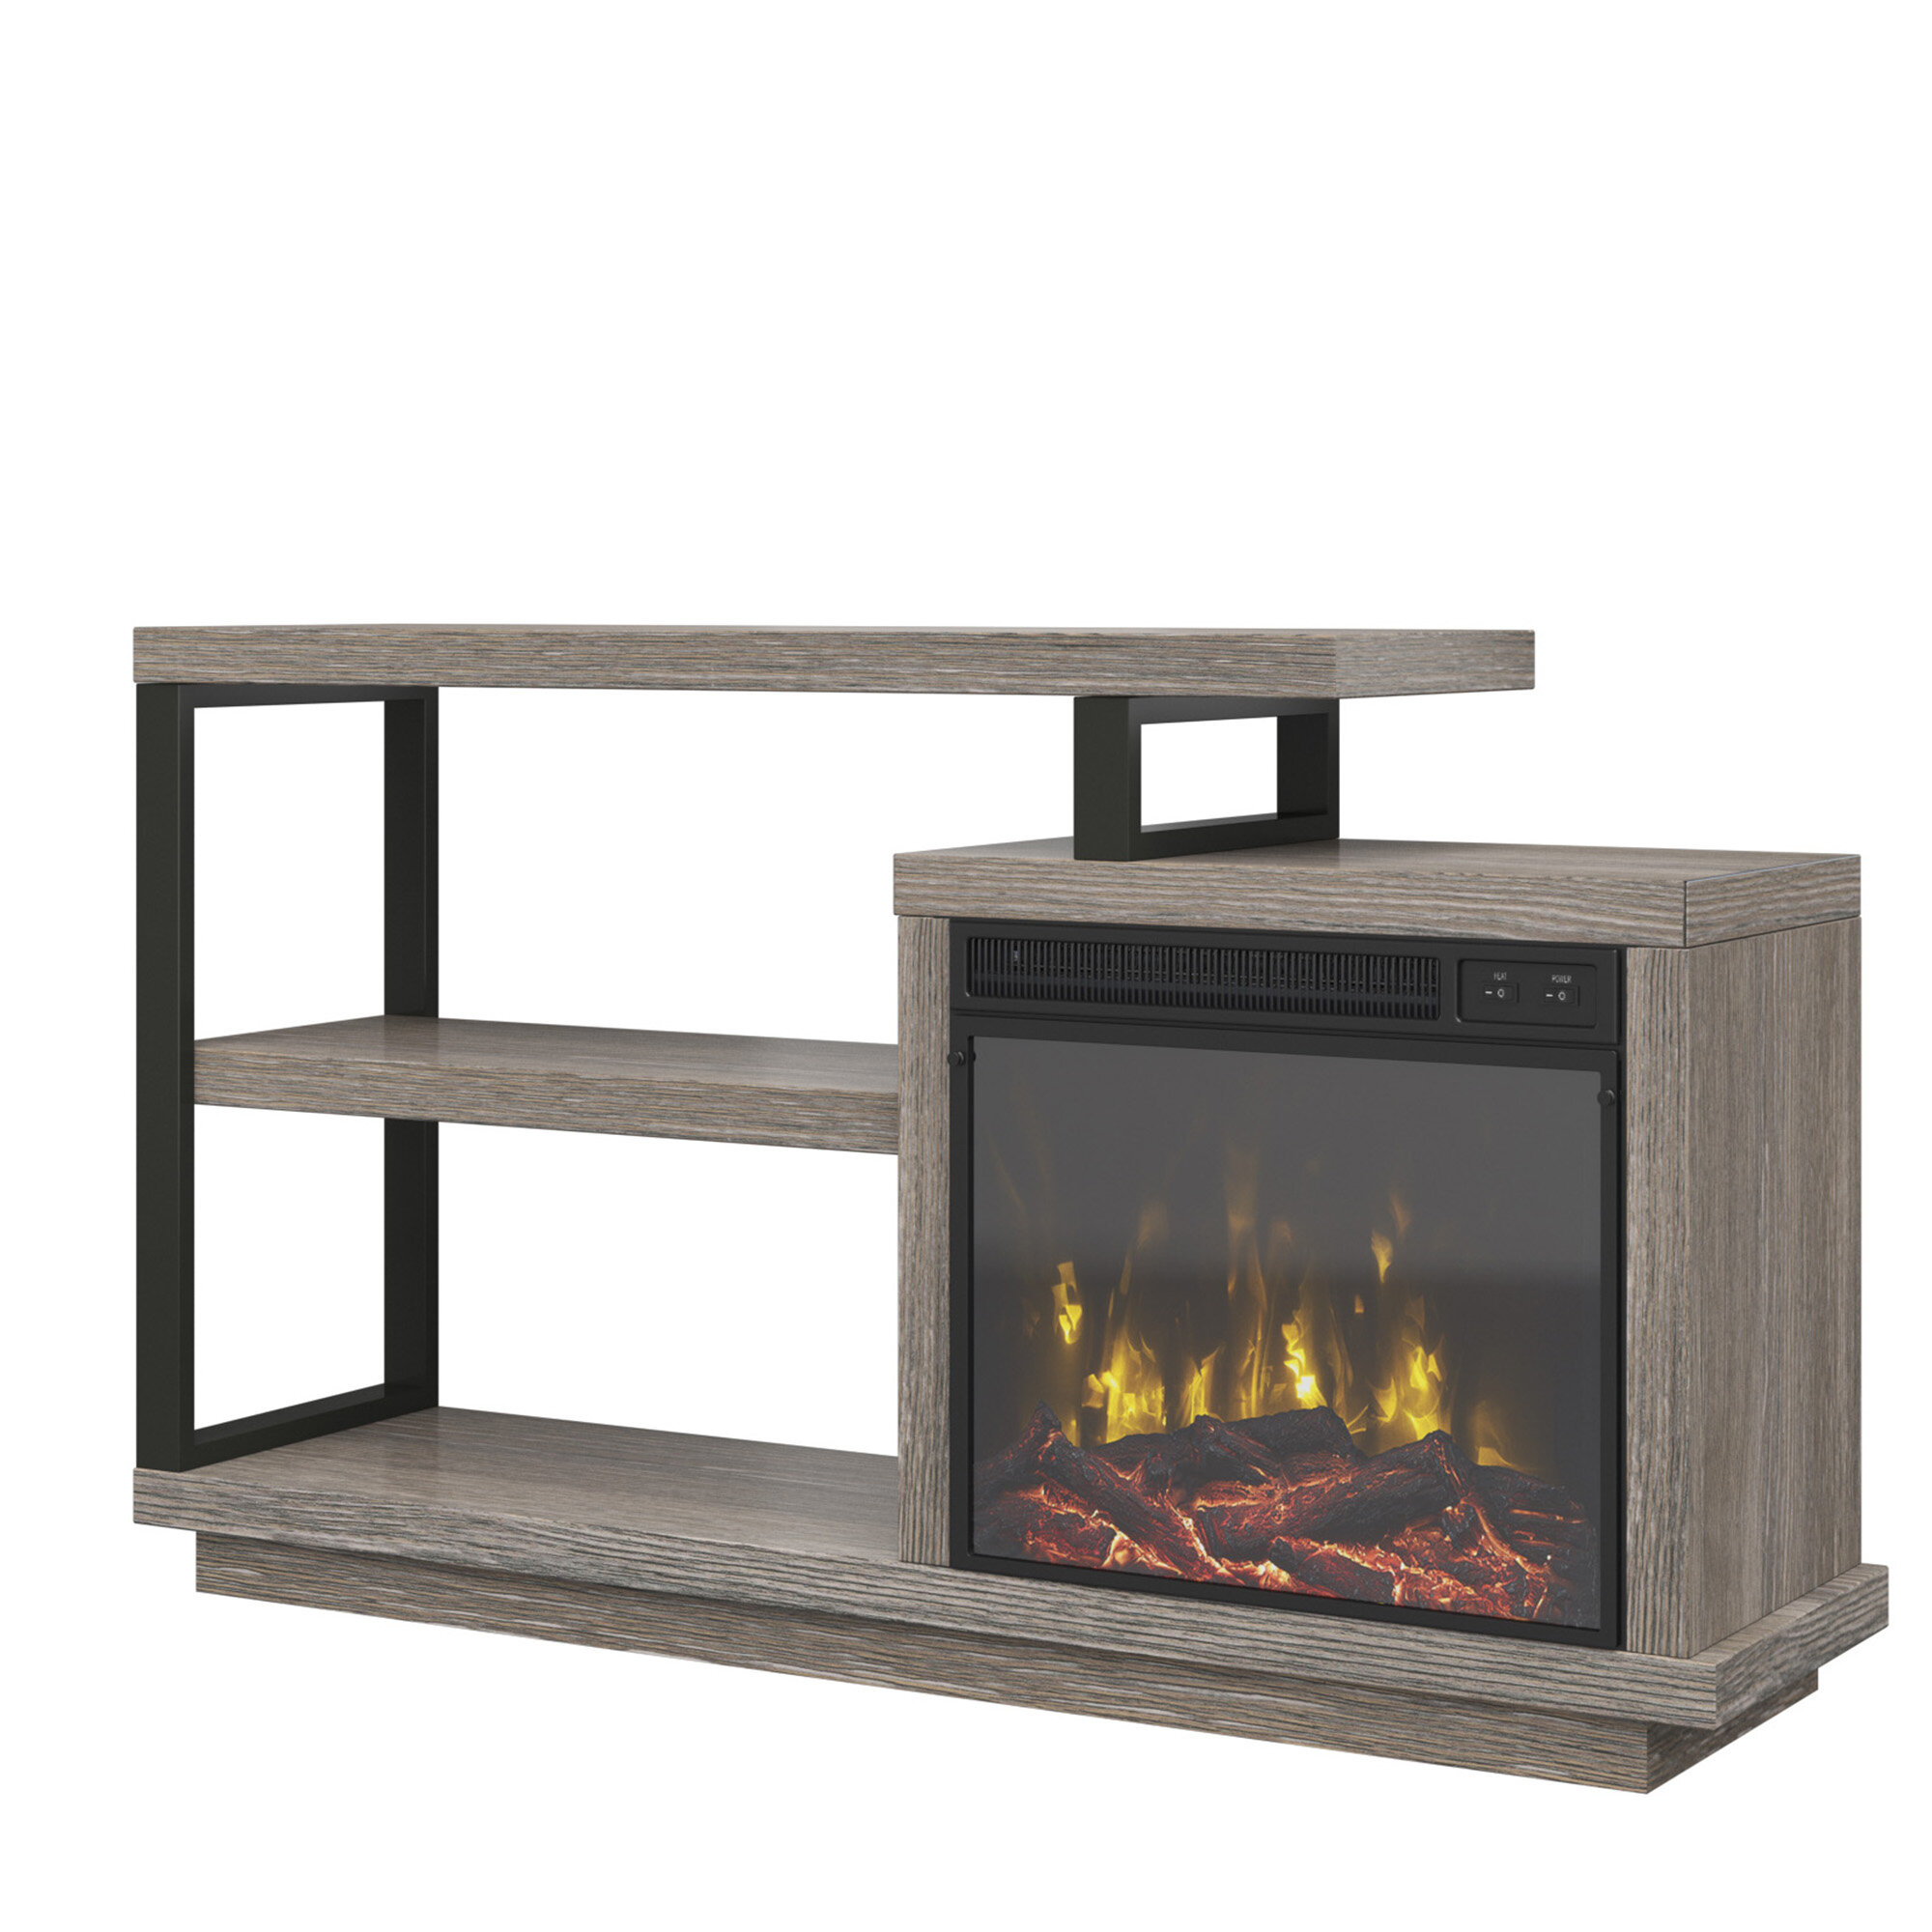 Astounding Louann Tv Stand For Tvs Up To 55 With Fireplace Download Free Architecture Designs Ponolprimenicaraguapropertycom